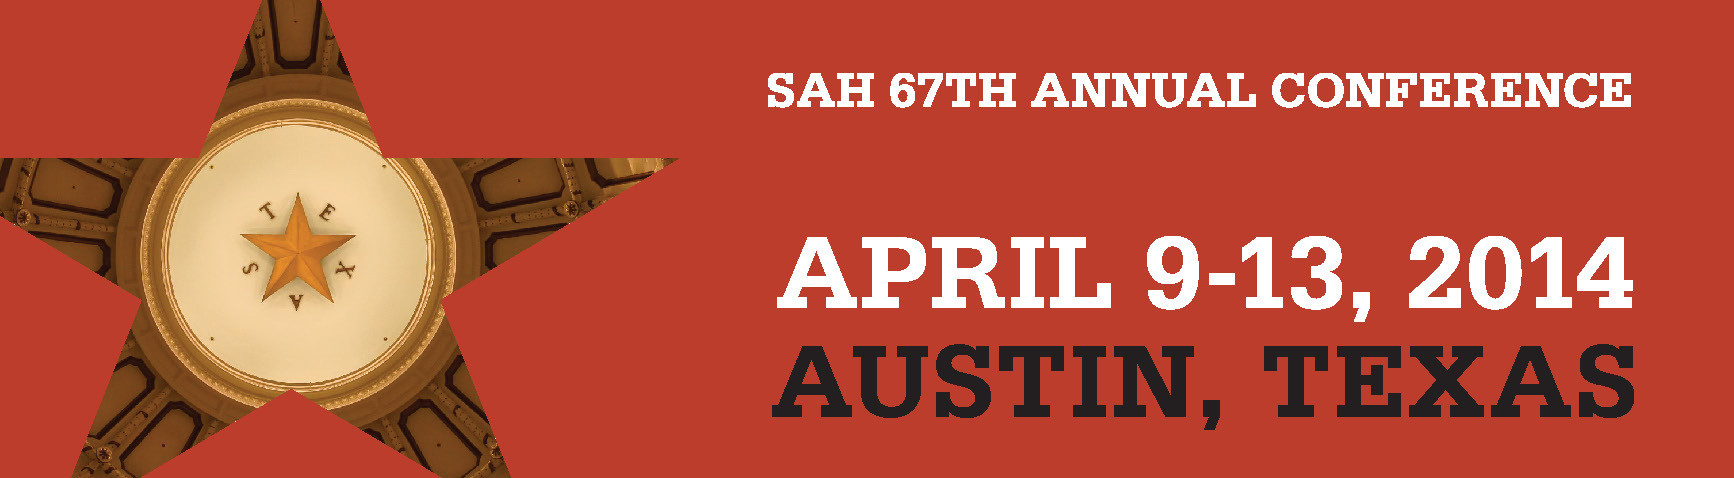 Society of Architectural Historians (SAH) 2014 Annual Conference